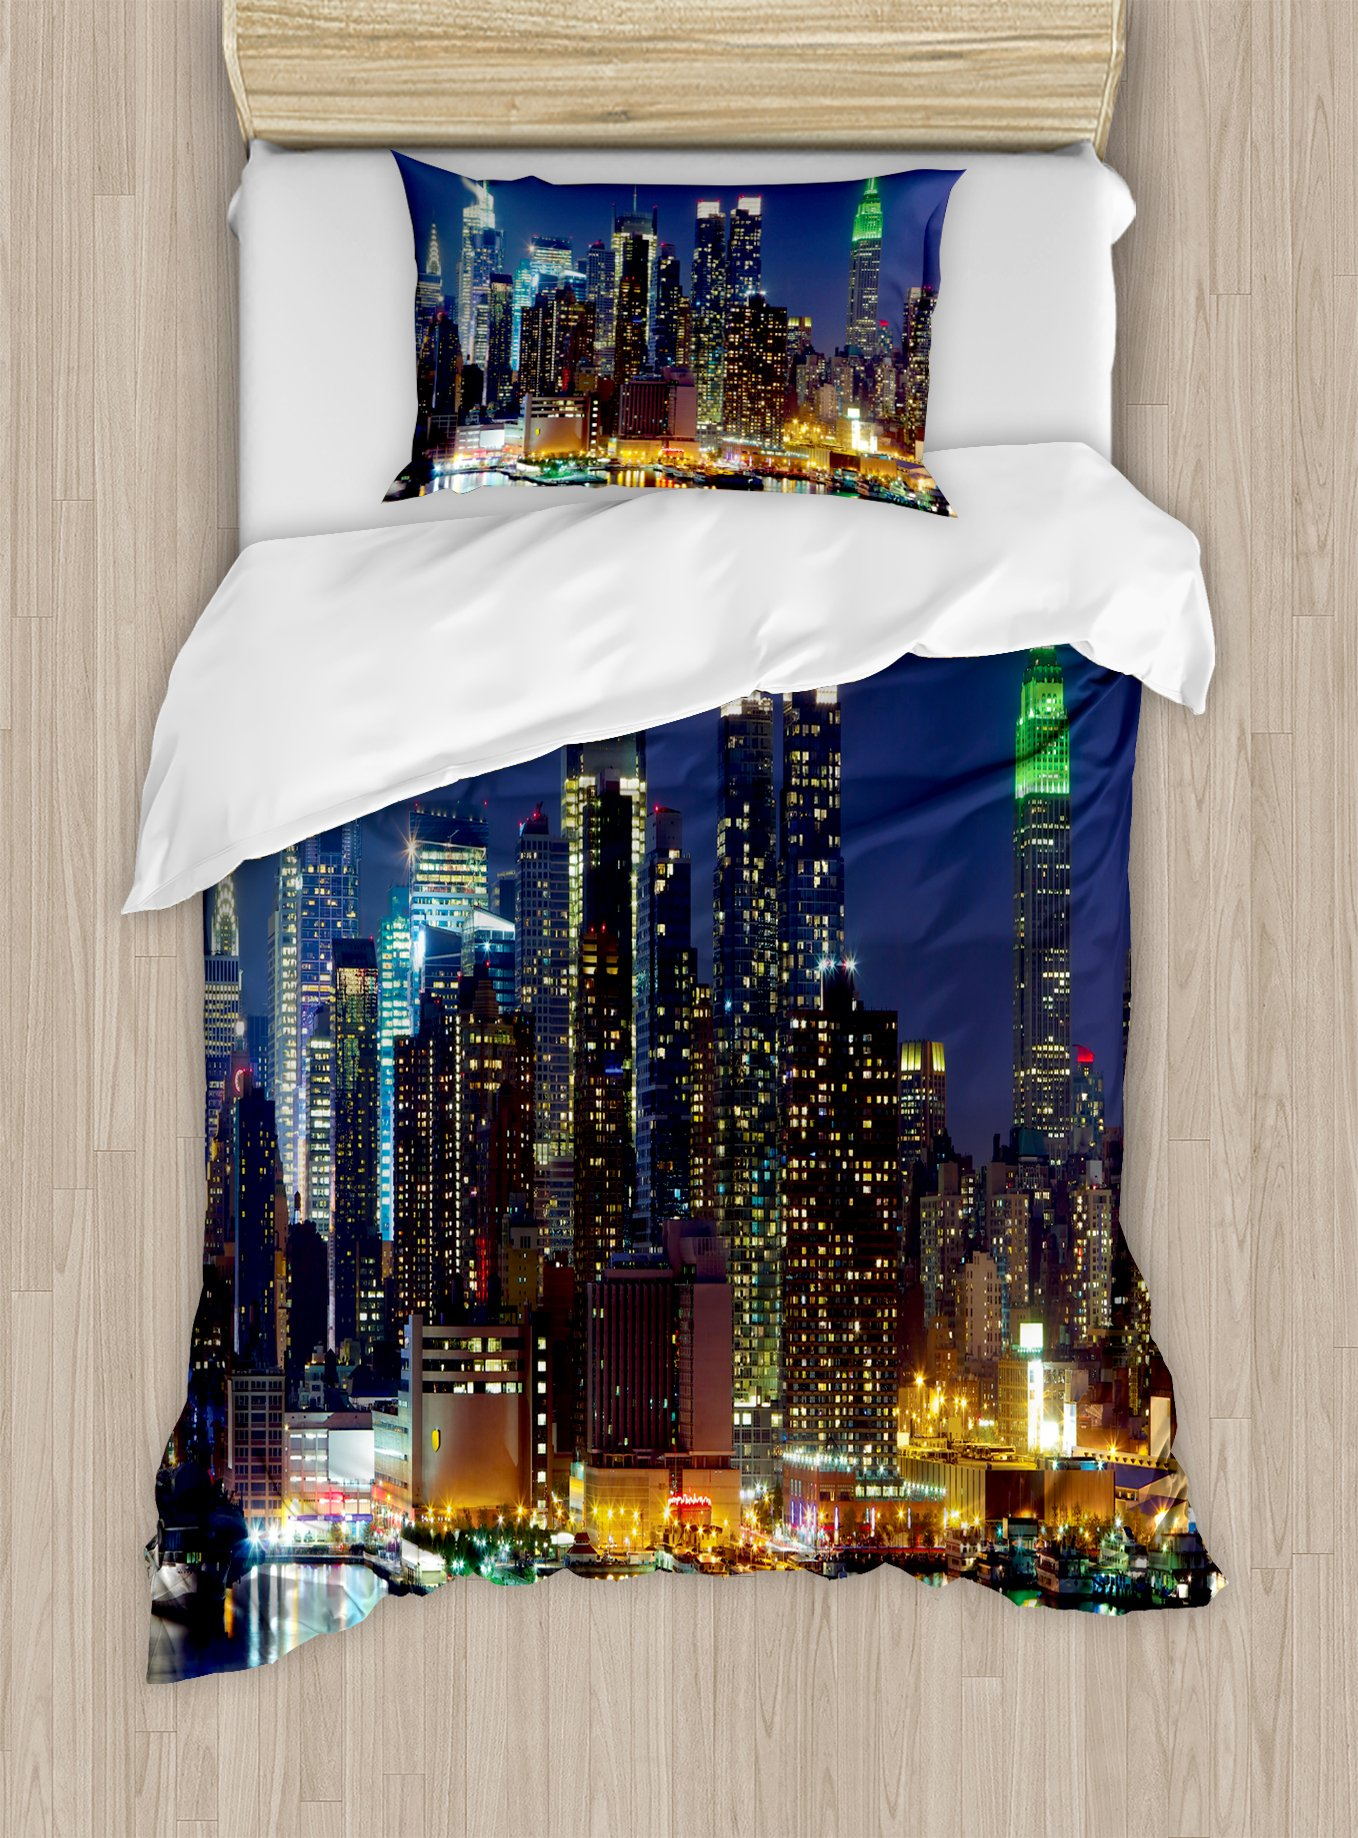 Ambesonne New York Duvet Cover Set Twin Size, NYC Midtown Skyline in Evening Skyscrapers Amazing Metropolis City States Photo, Decorative 2 Piece Bedding Set with 1 Pillow Sham, Royal Blue